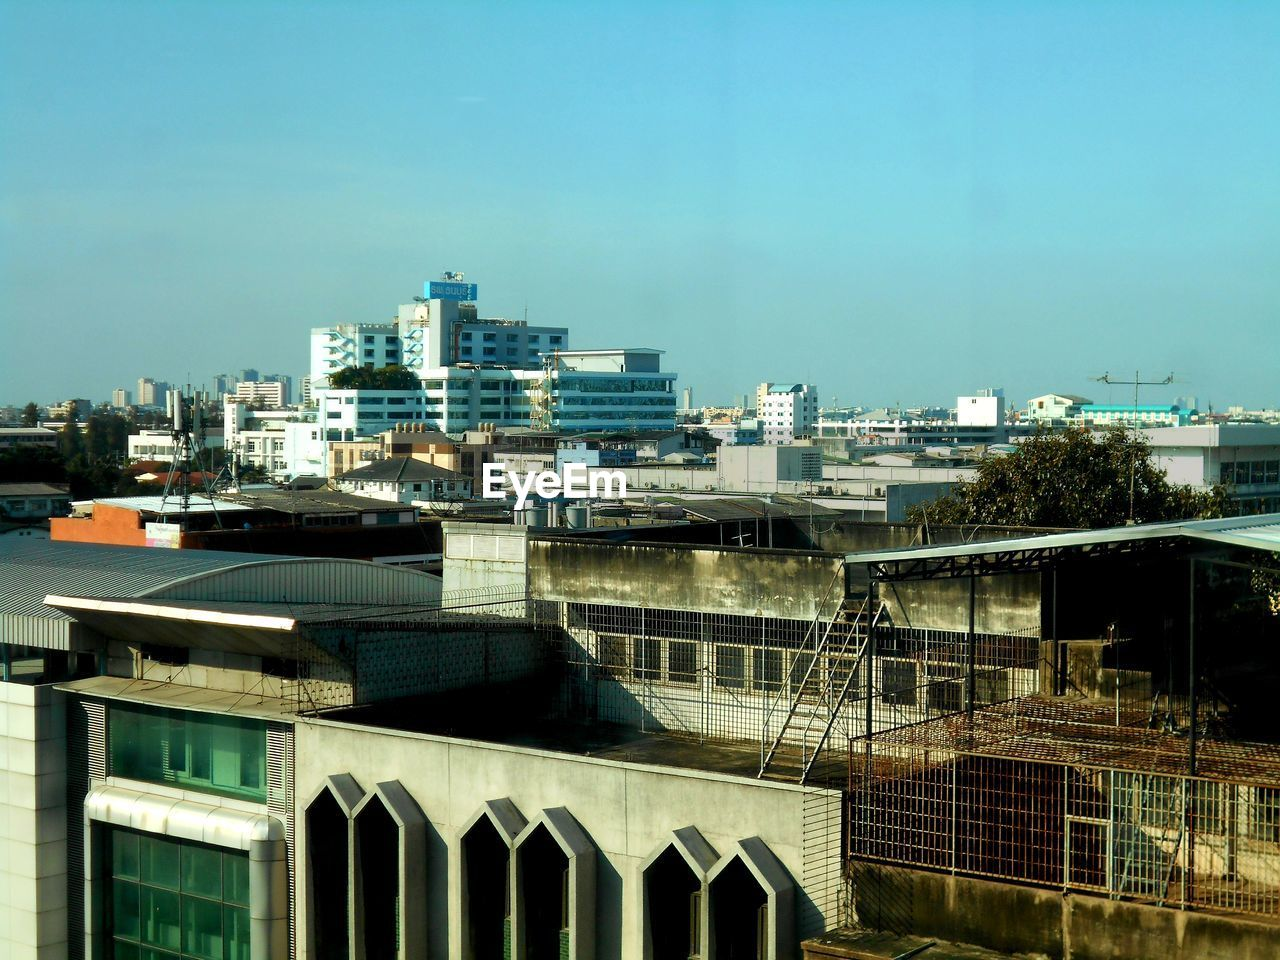 built structure, architecture, building exterior, building, sky, city, nature, no people, day, residential district, outdoors, sunlight, copy space, clear sky, house, office building exterior, blue, window, cityscape, glass - material, skyscraper